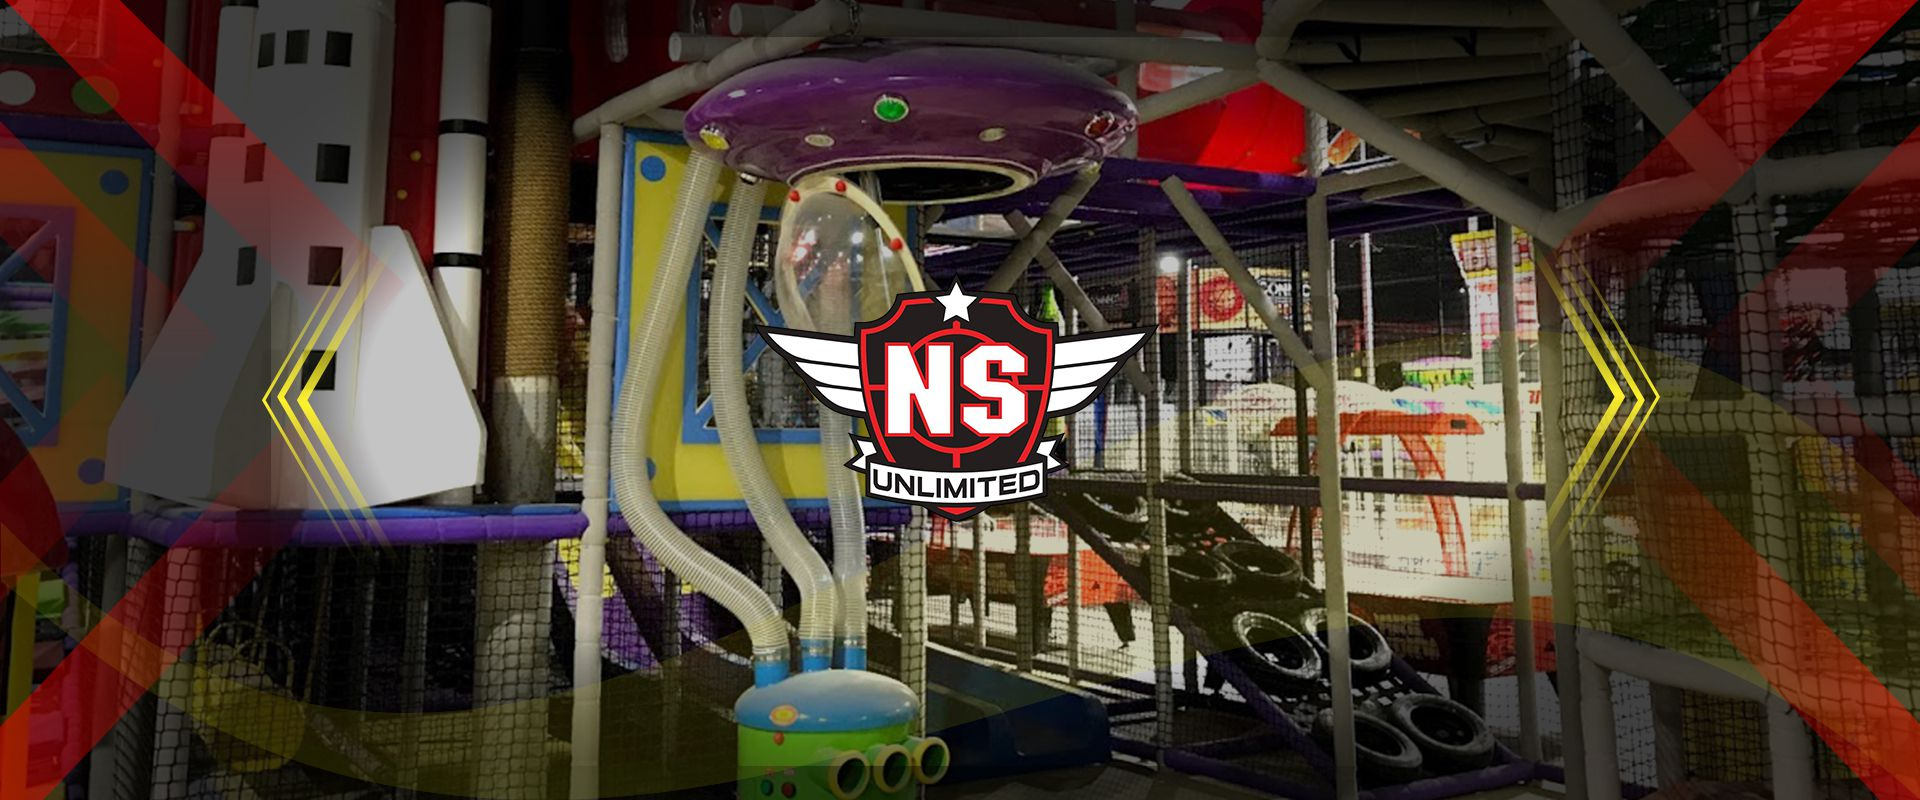 Picture of the interior of No Surrender, a laser tag center in Clovis, California